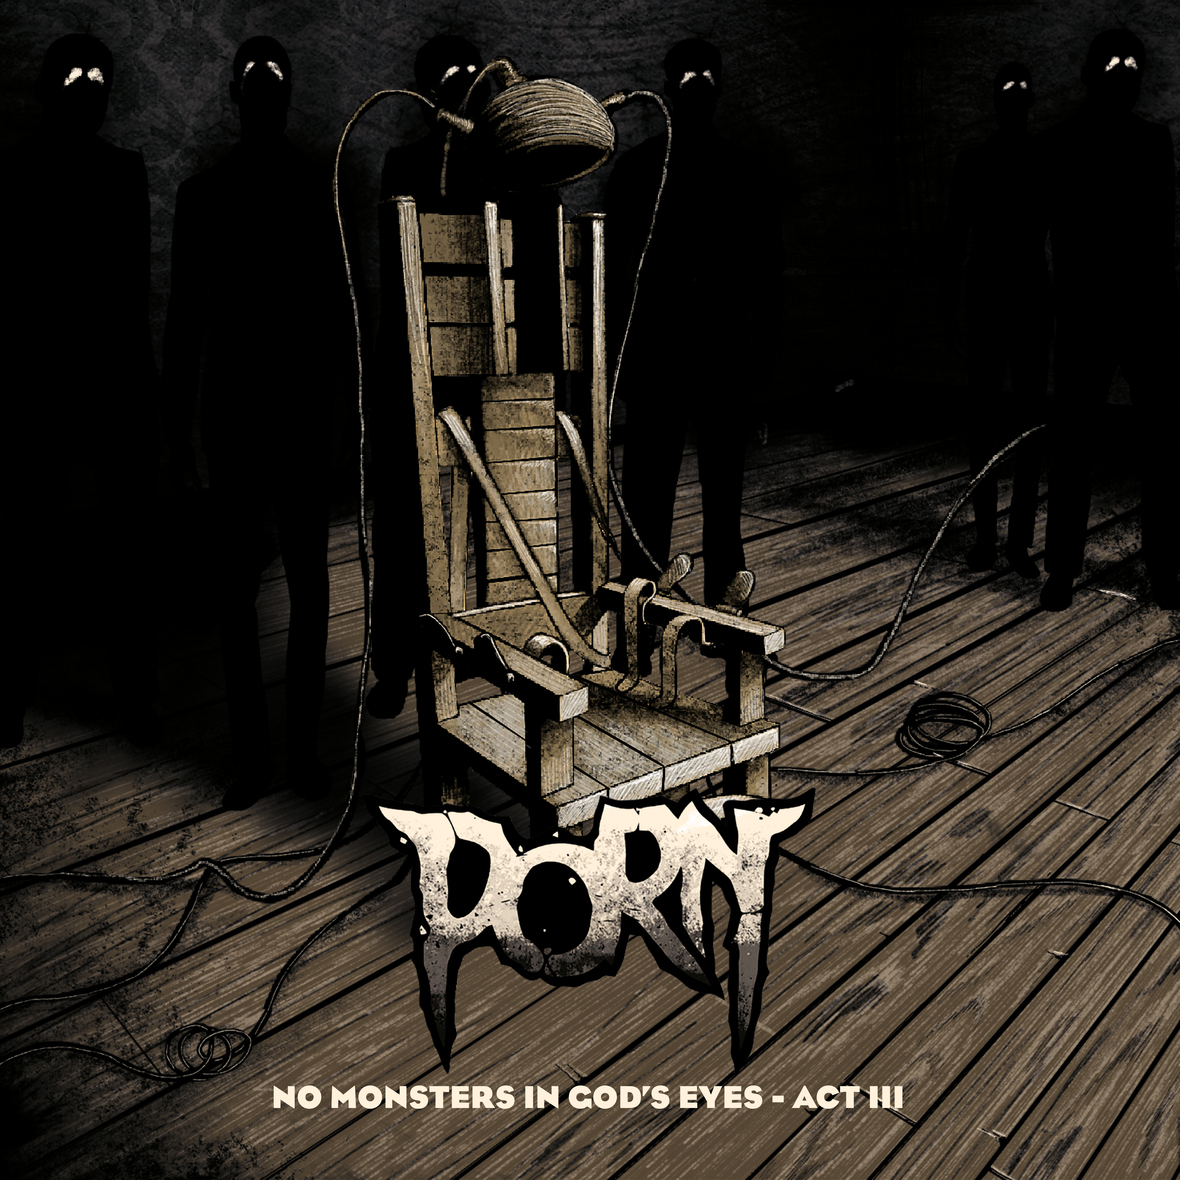 PORN - No monsters in god s eyes Act III - ARTWORK